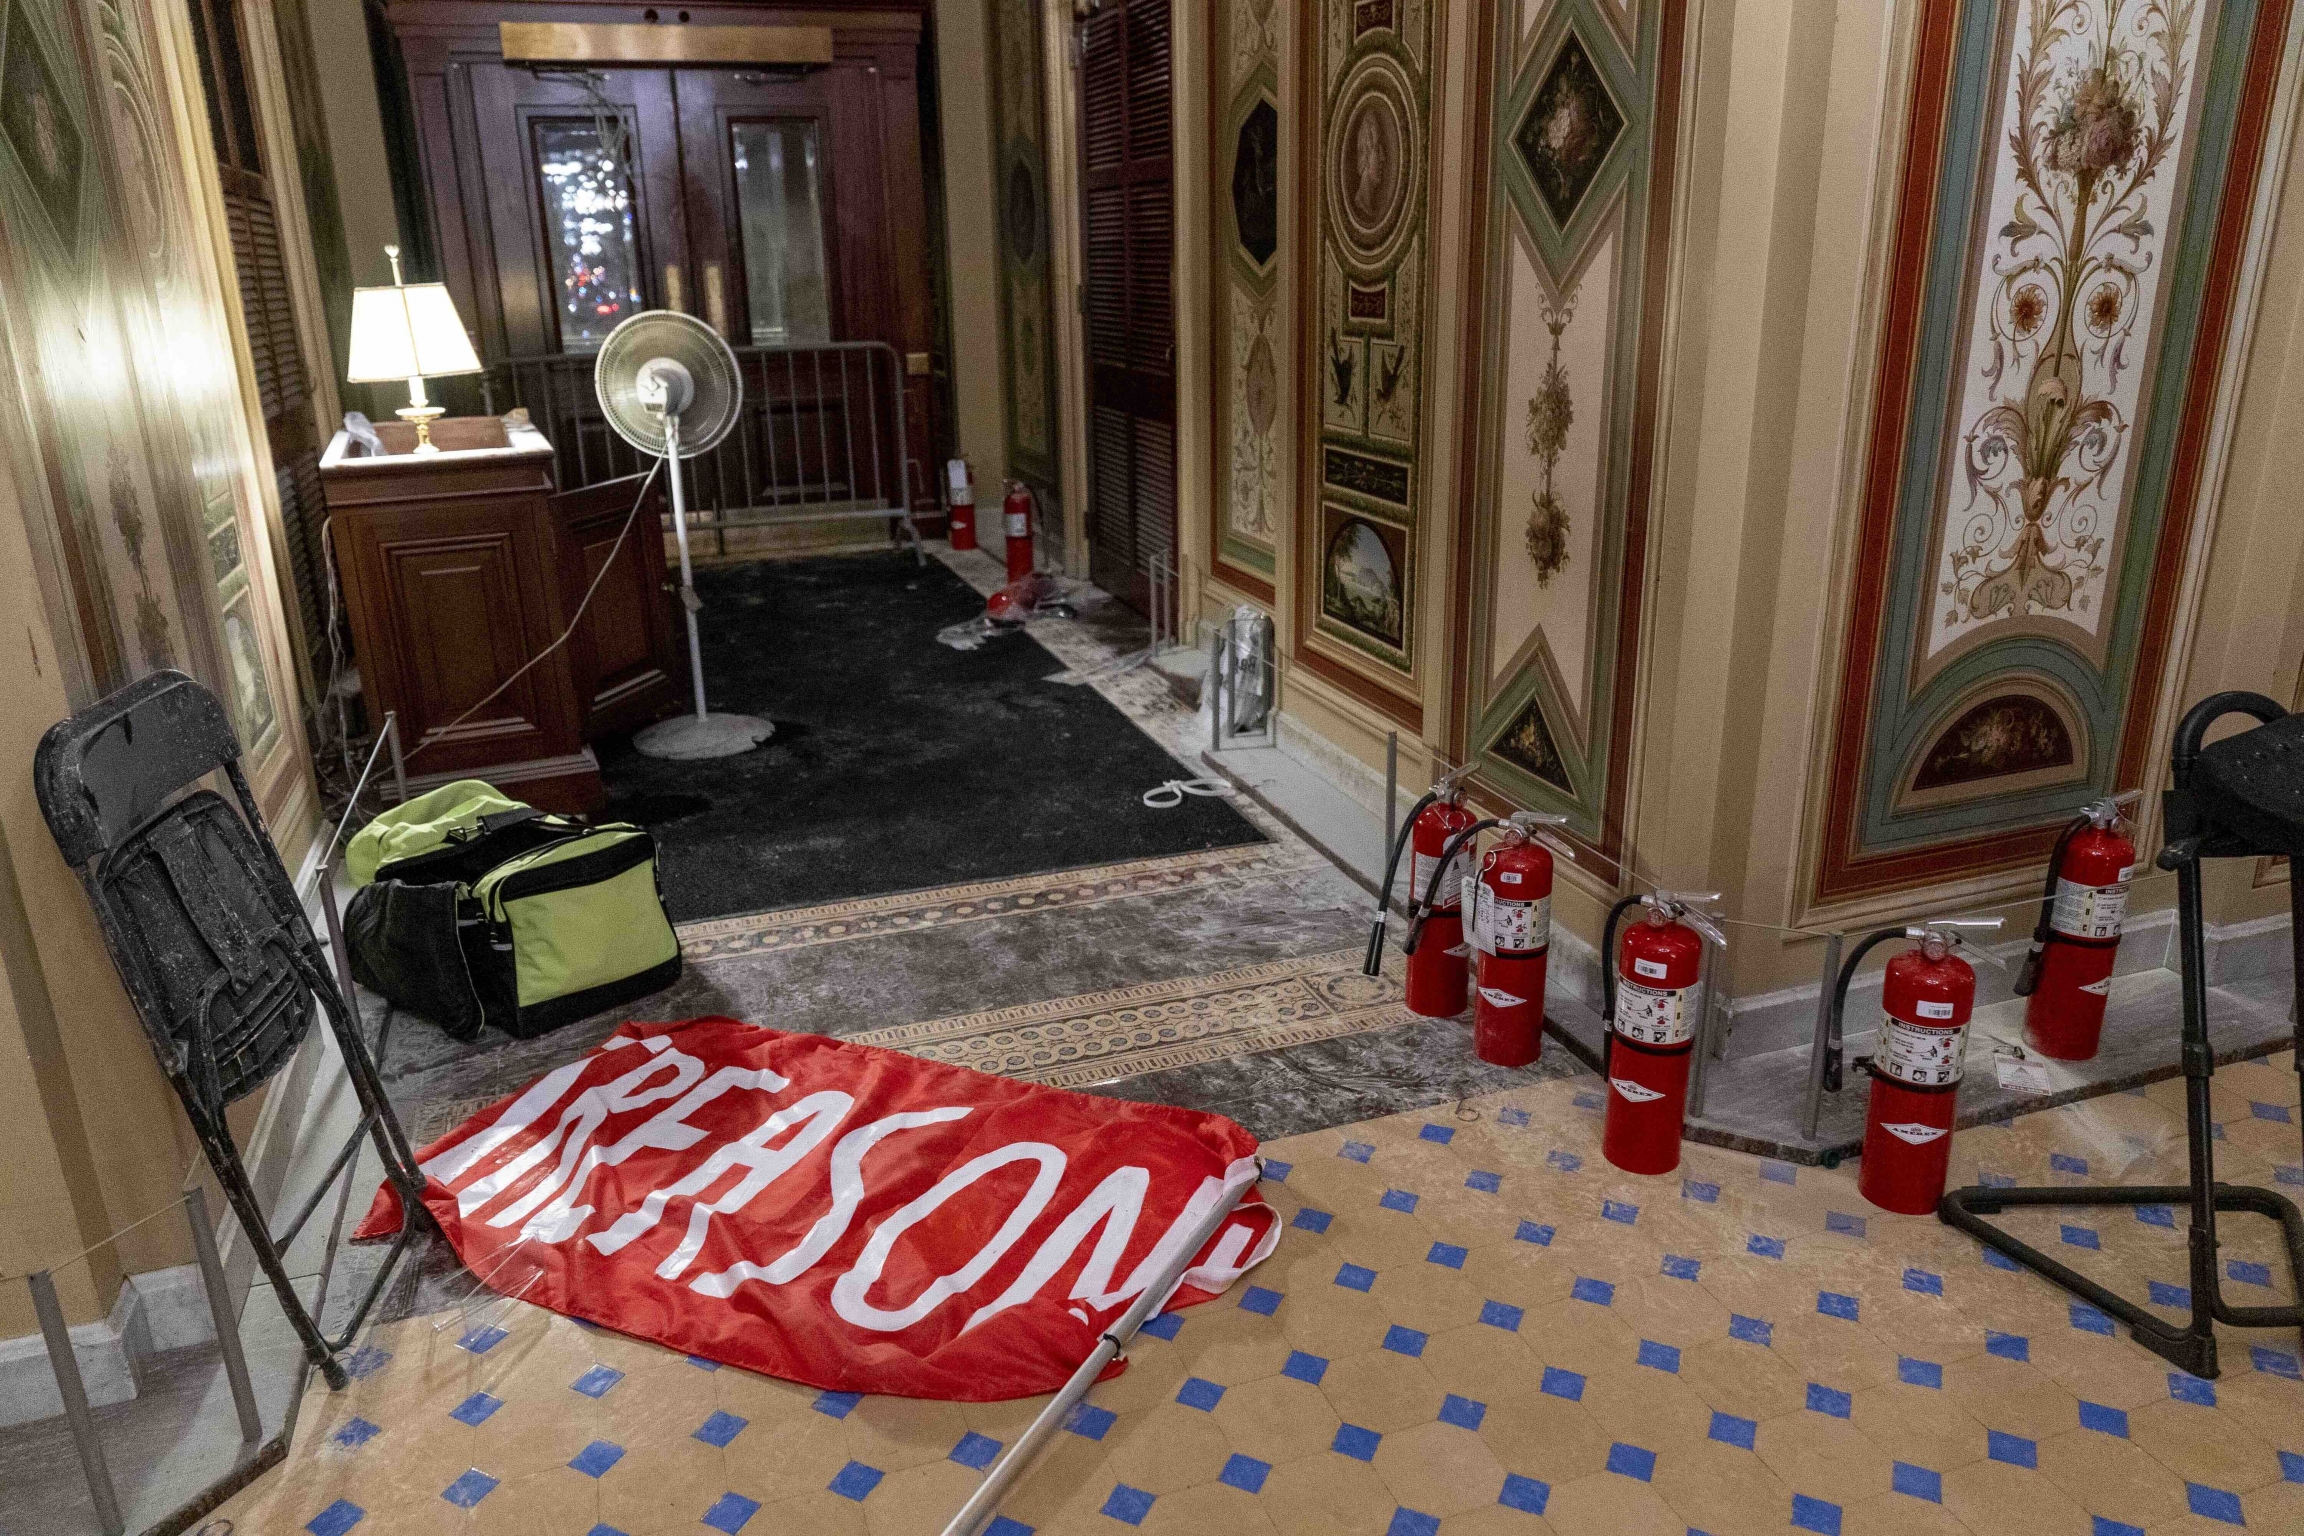 """A flag that reads """"Treason"""" is visible on the ground of the US Capitol building."""